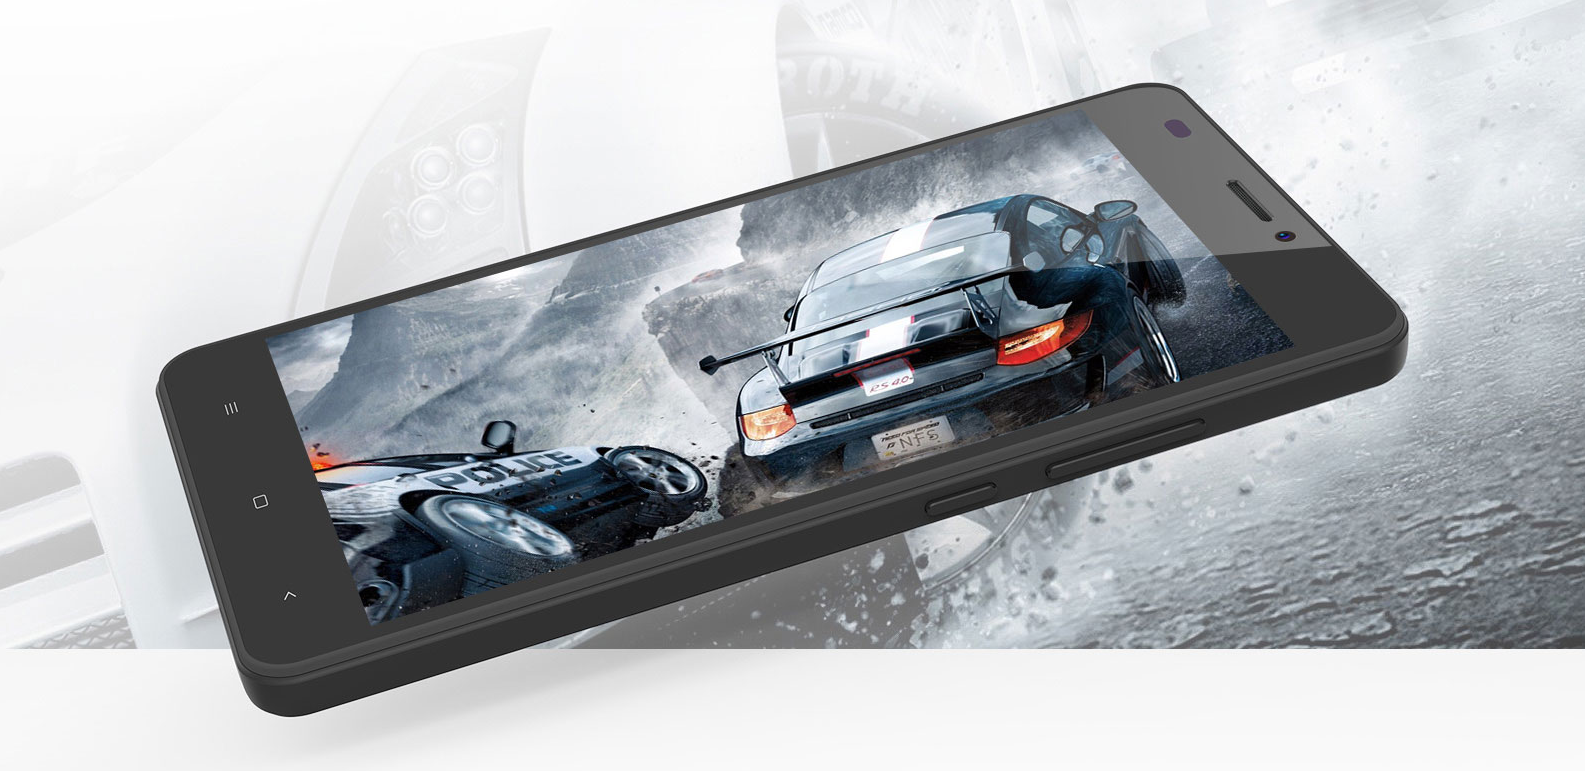 Oukitel C3 promotional picture showing a car game that is being played on the device; white background.